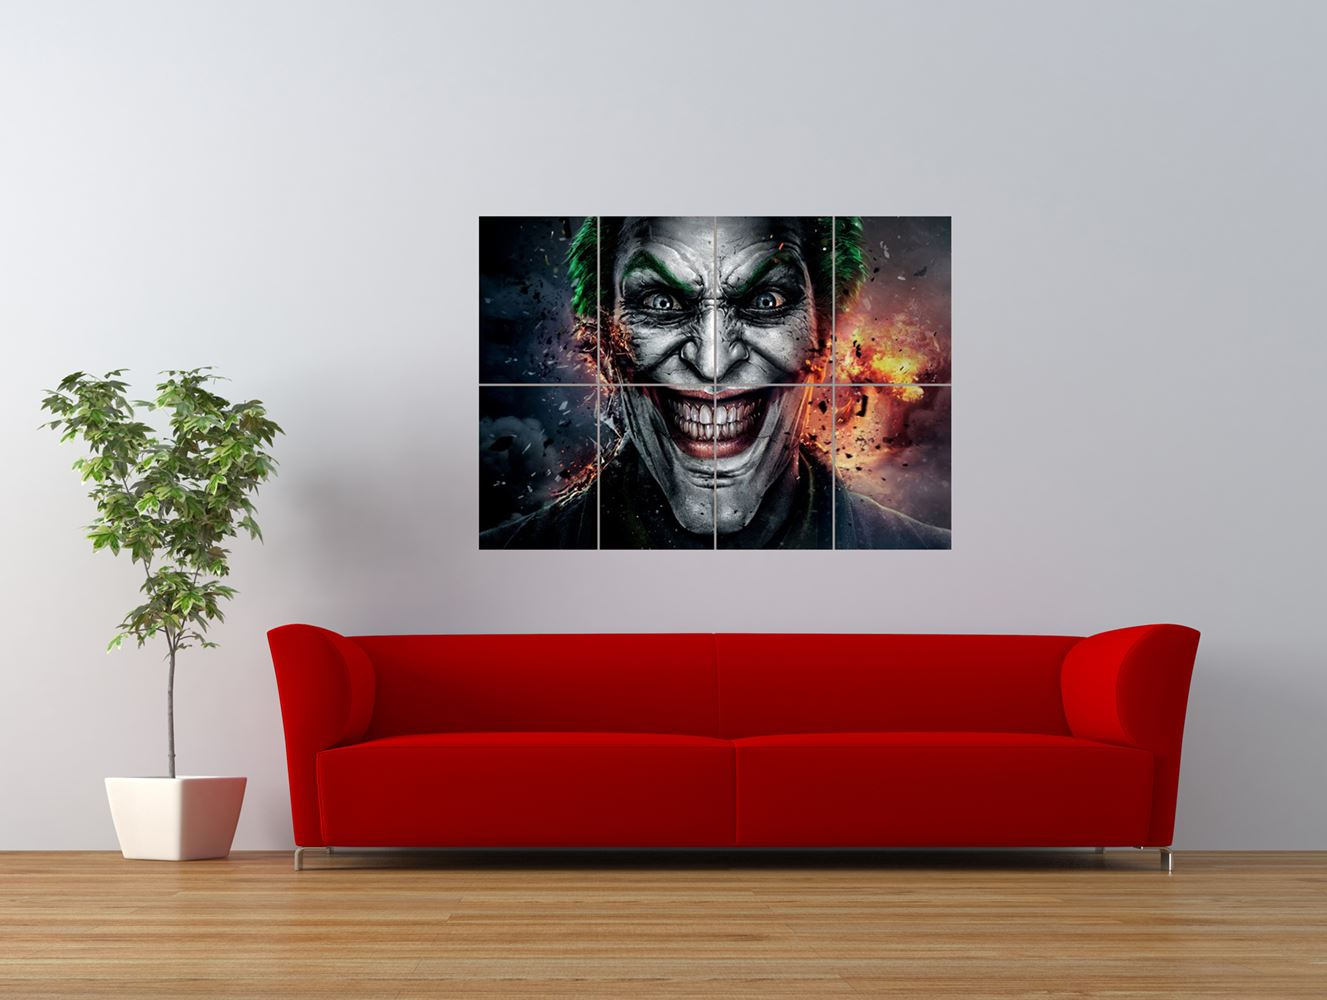 injustice gods among us xbox one ps4 ps3 giant art print panel poster nor0254 ebay. Black Bedroom Furniture Sets. Home Design Ideas